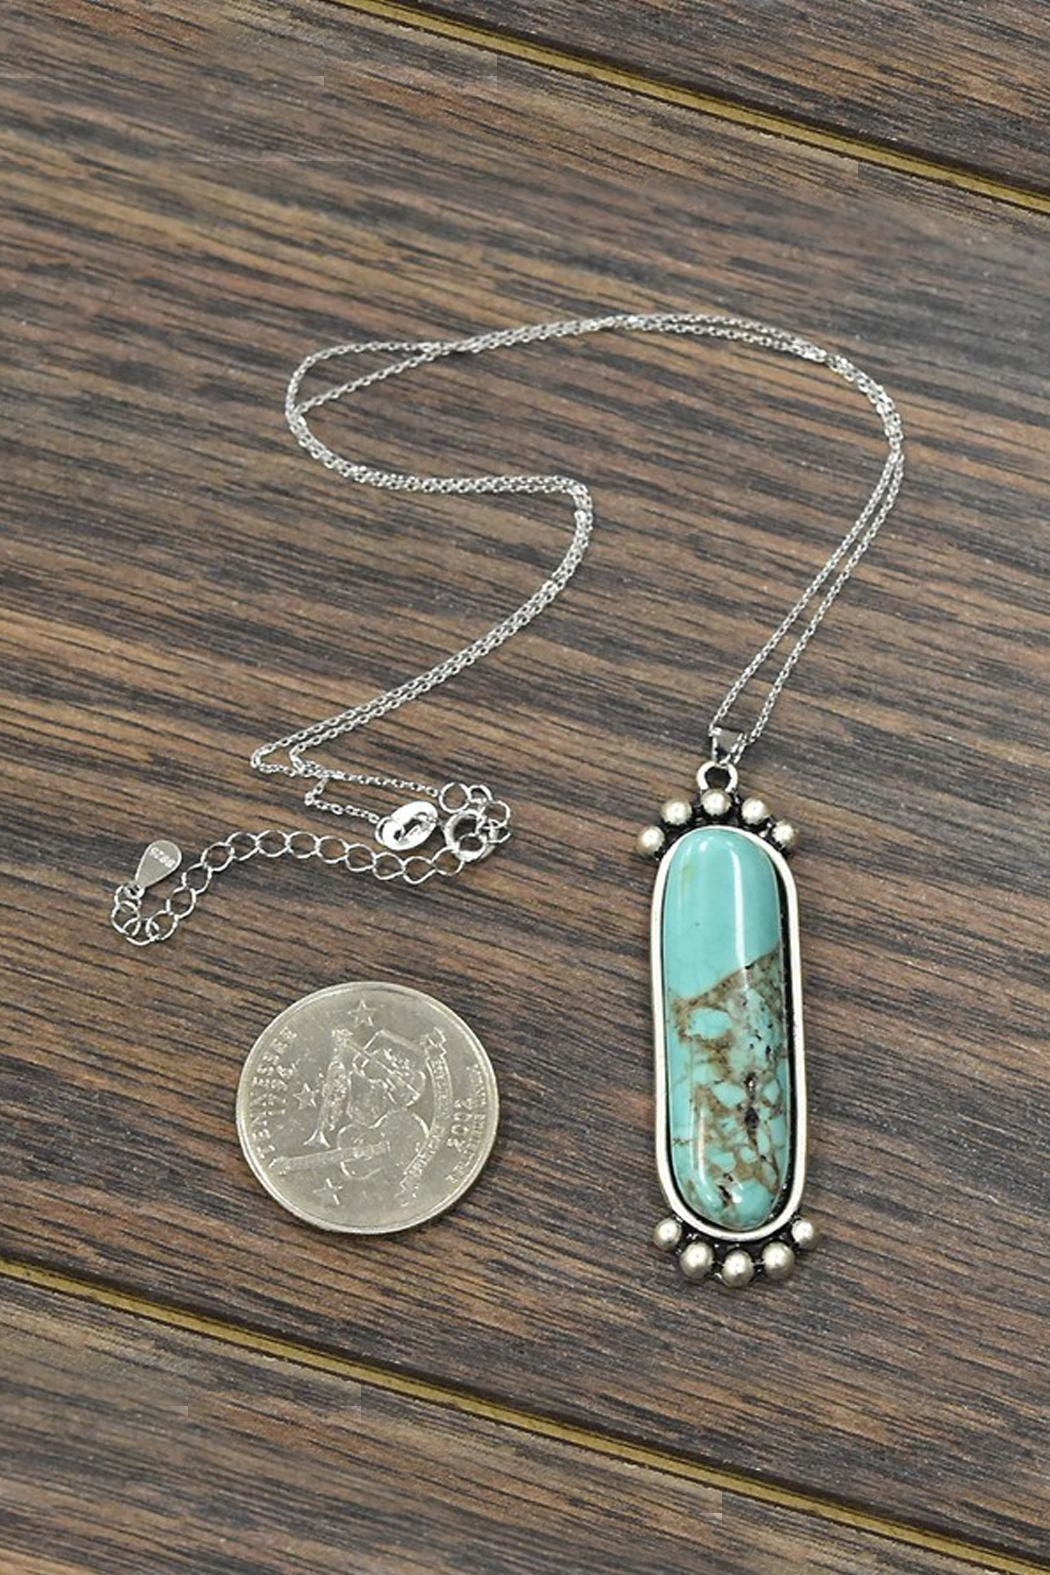 JChronicles Sterling-Silver-Chain With Natural-Turquoise-Pendant-Necklace - Front Full Image